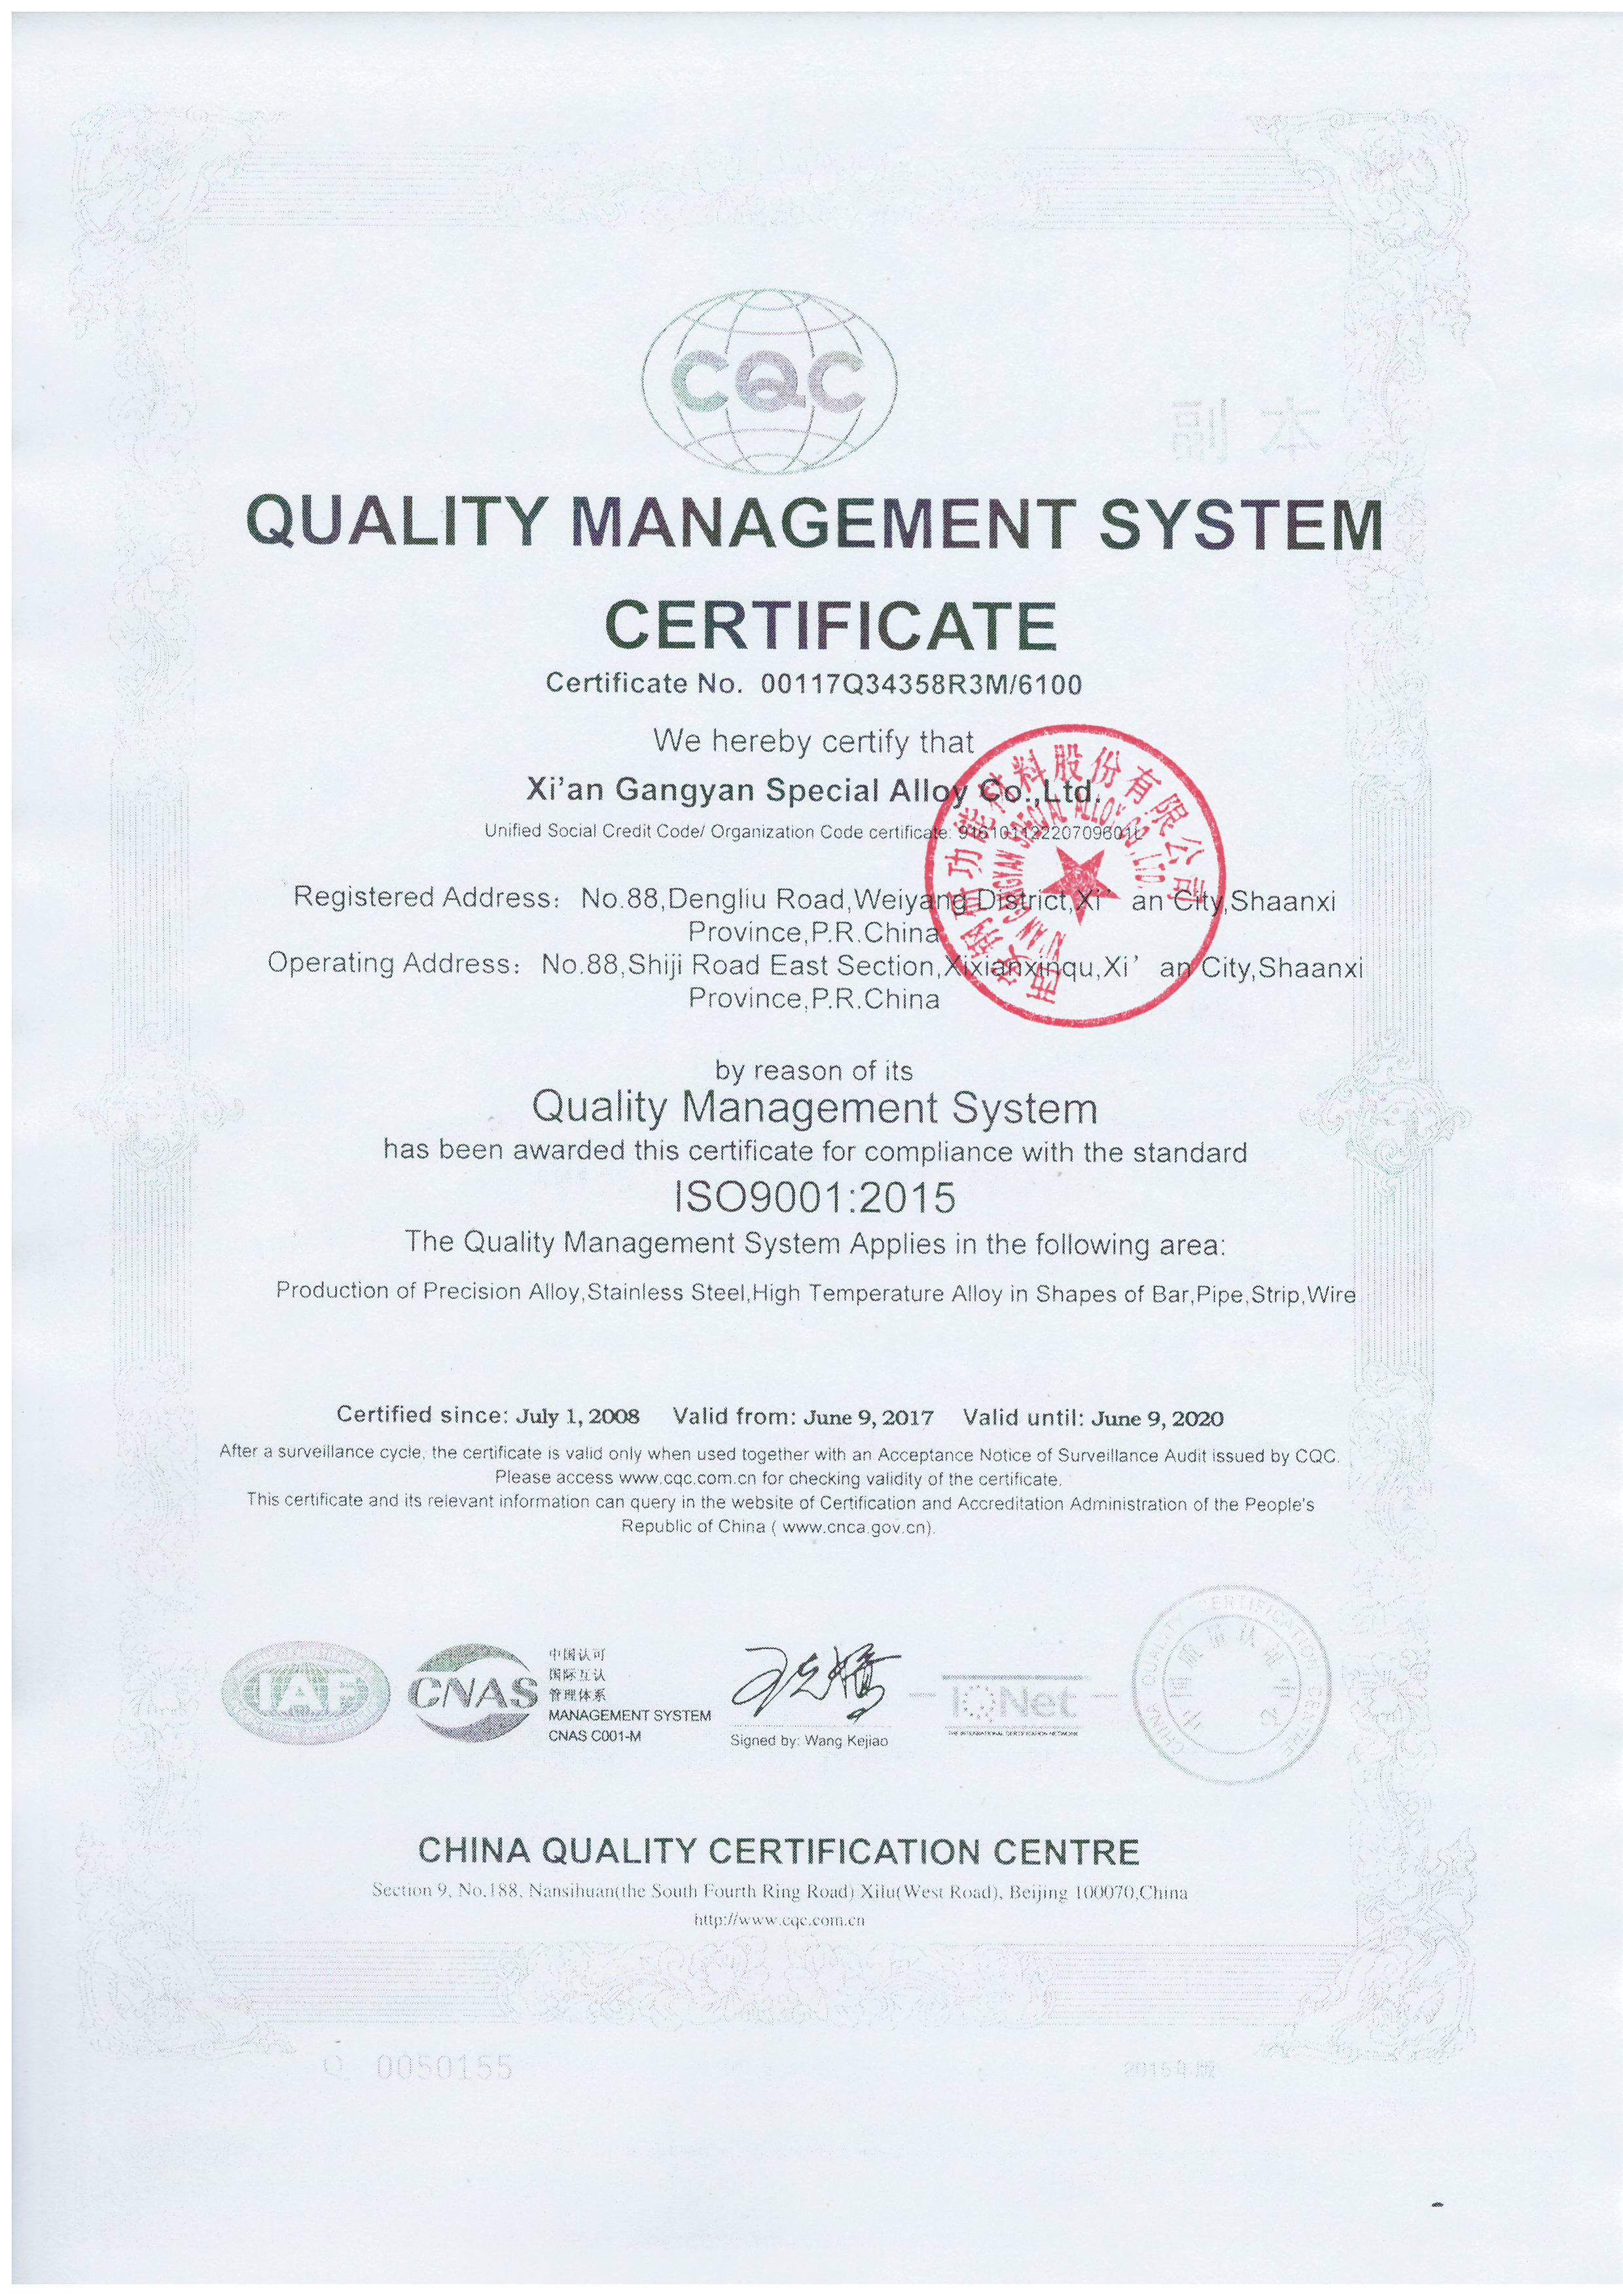 Quality Management System Certificate upgrade ISO9001:2015